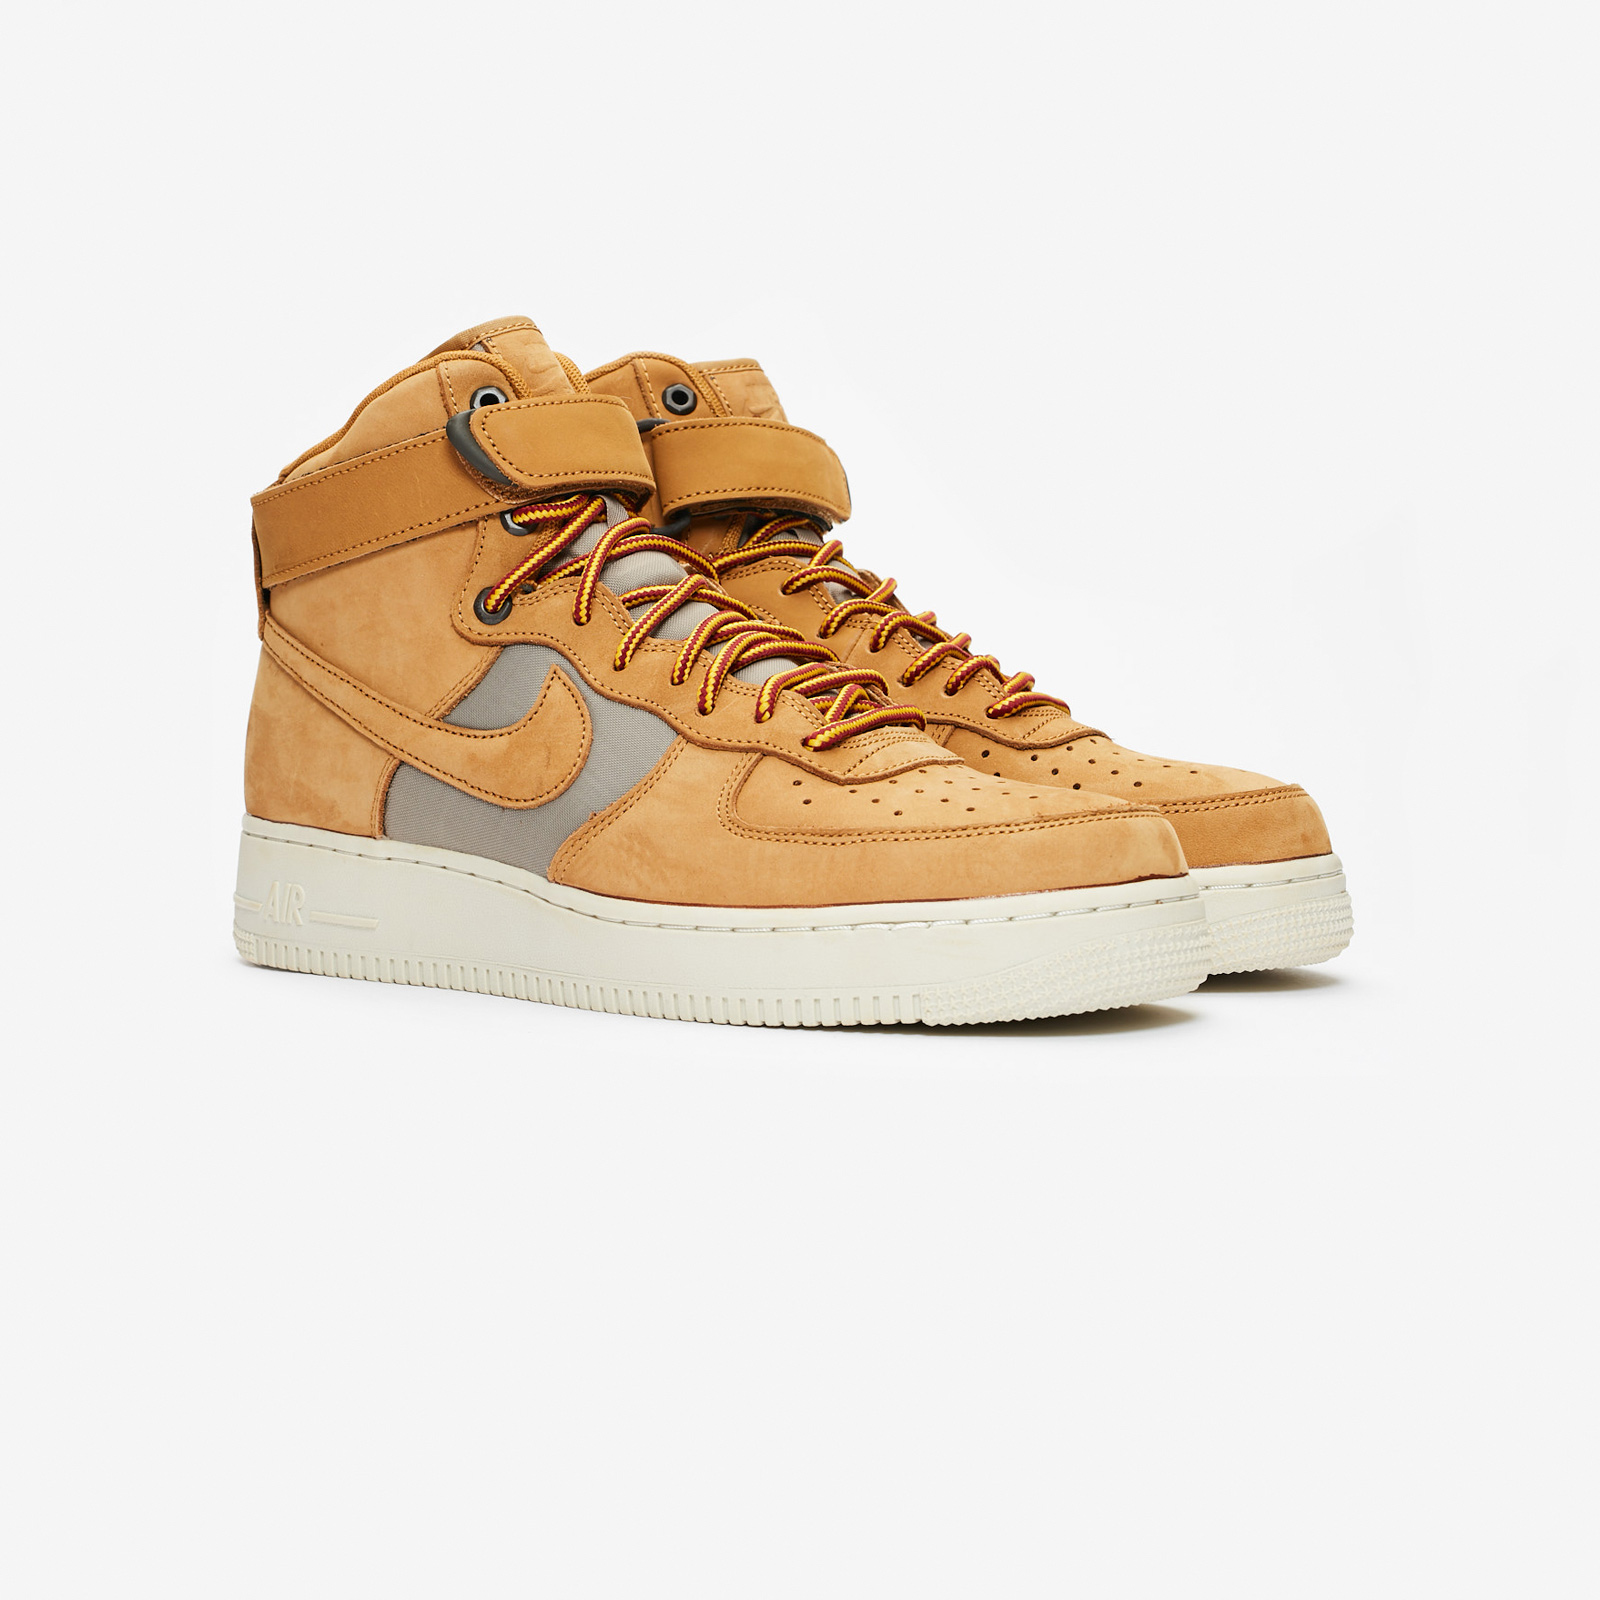 super popular 38ca7 082a3 Nike Sportswear Air Force 1 High 07 Premium